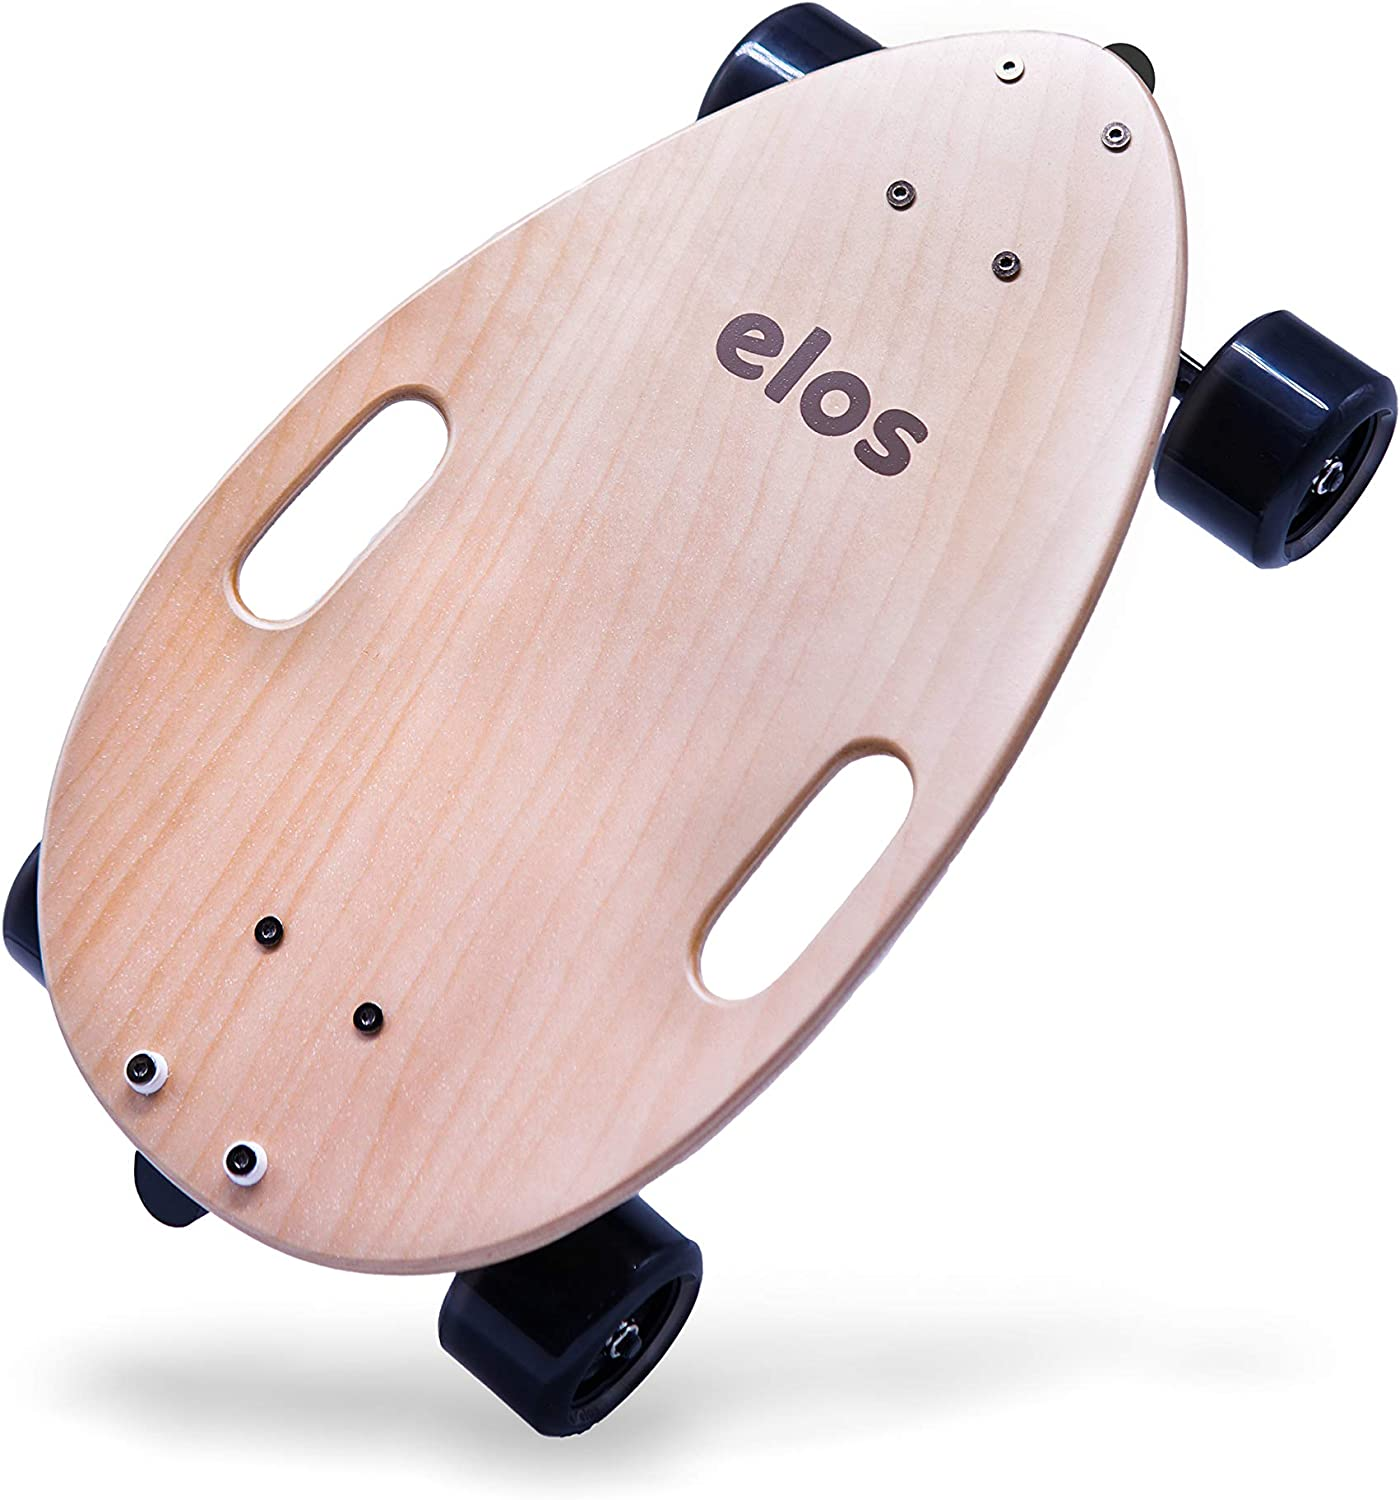 elos Skateboard Complete Lightweight – Mini Longboard Cruiser Skateboard Built for Beginners and Urban commuters. Wide and Stable Skateboard Deck. Non-Electric. Campus Board.